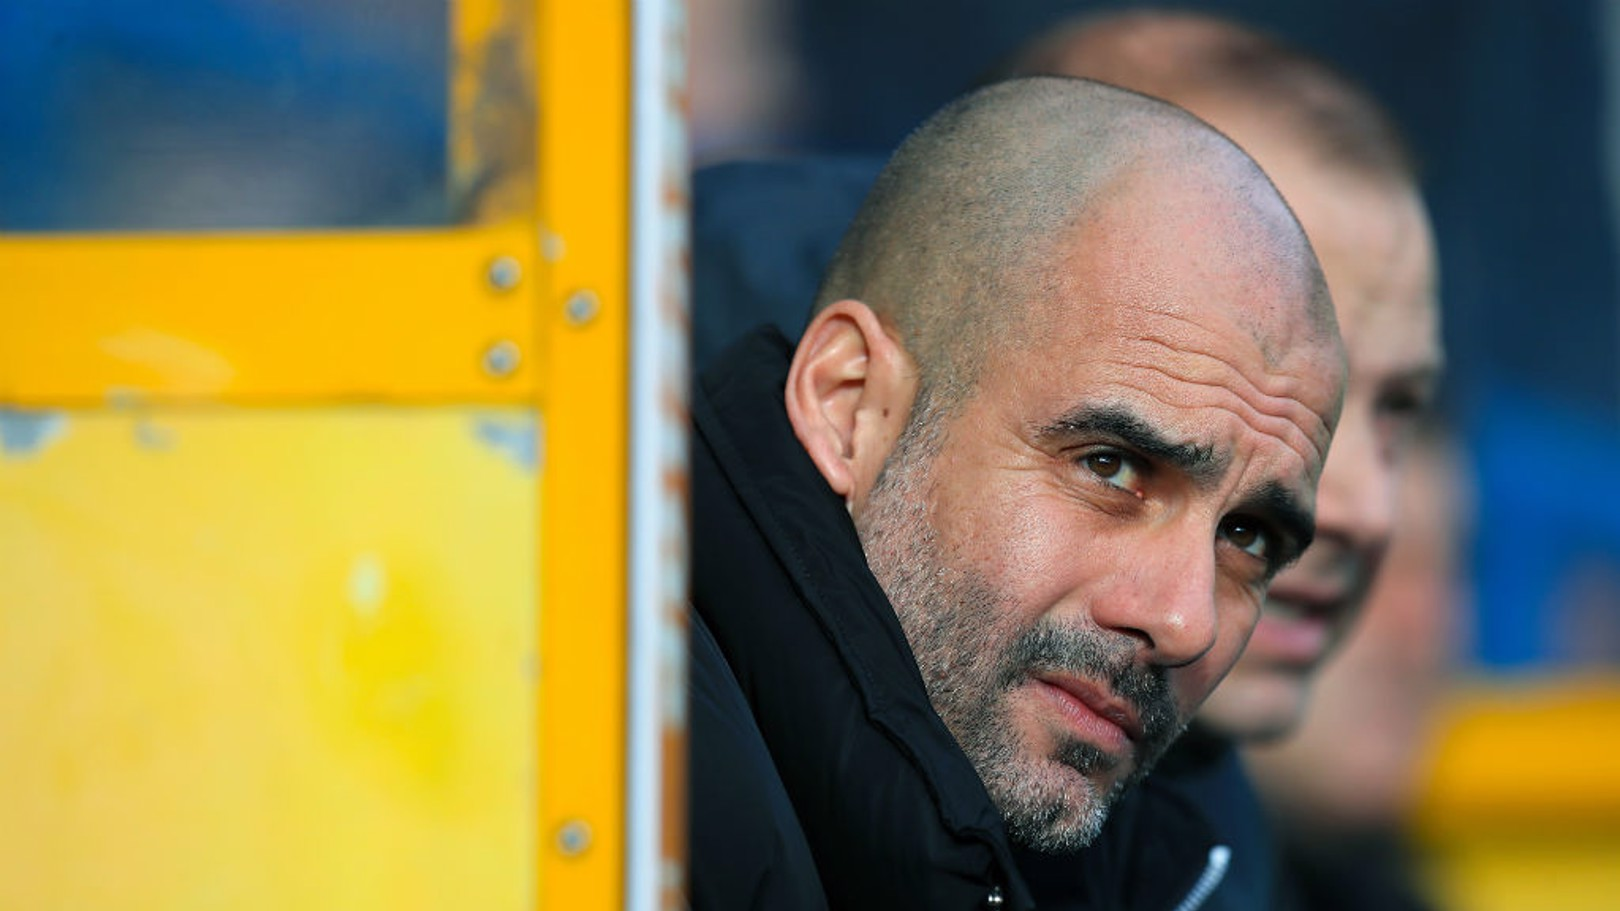 PONDEROUS: Pep takes his seat in the dugout